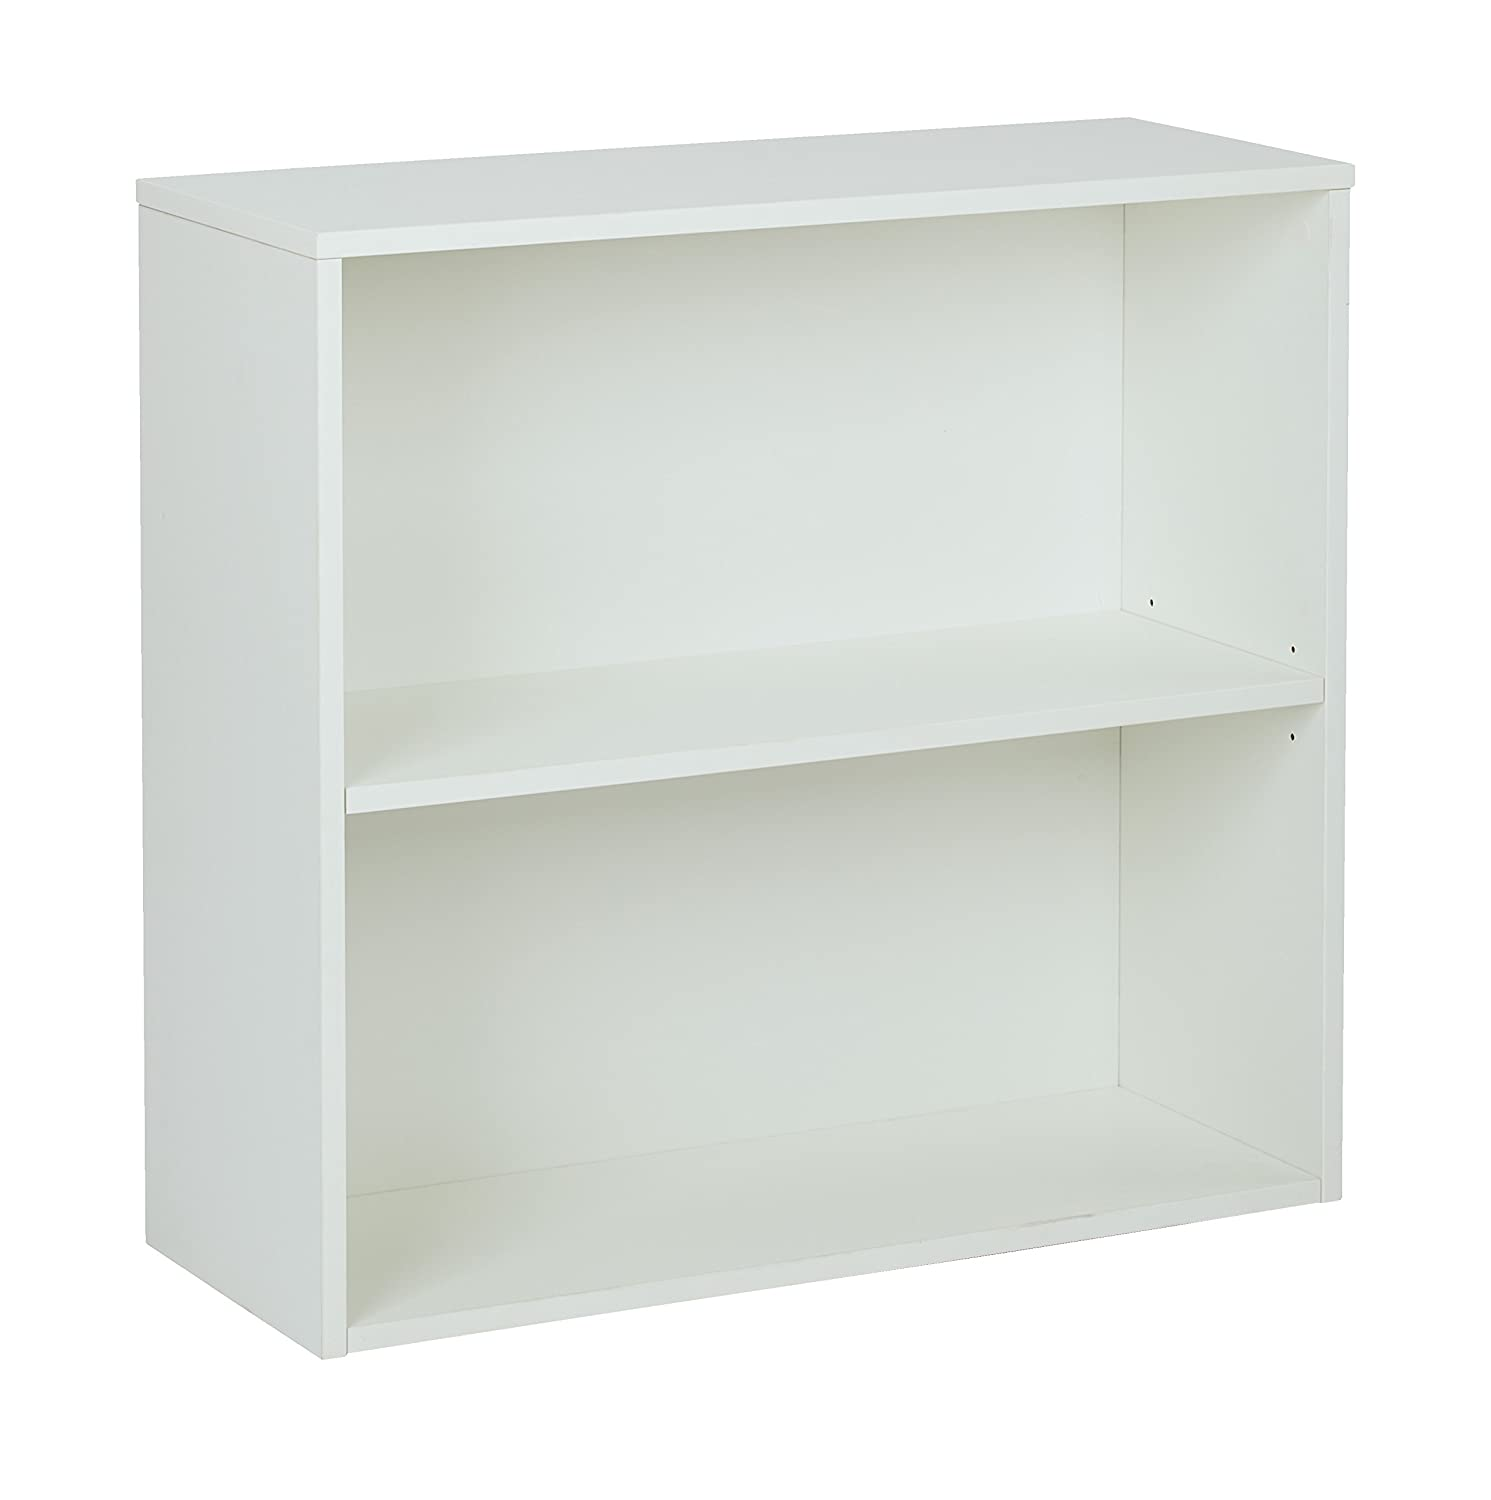 Office Star Prado 2 Shelf Bookcase, White Laminate Finish Office Star--DROPSHIP PRD3230-WH